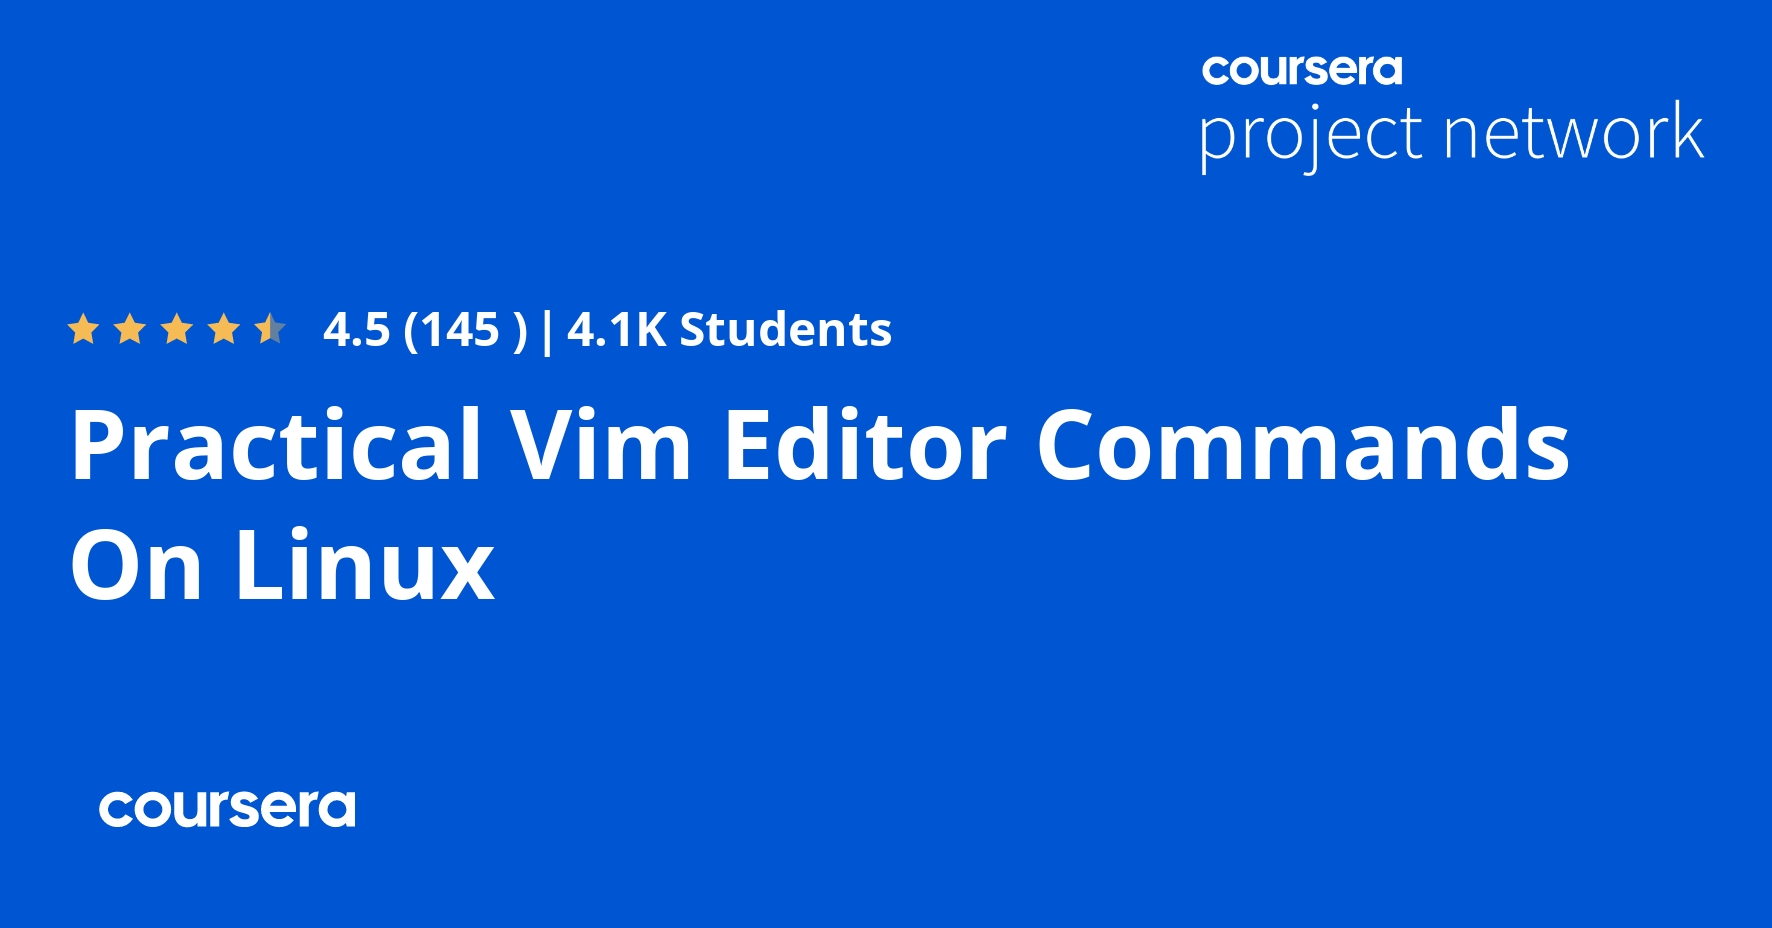 Practical Vim Editor Commands On Linux